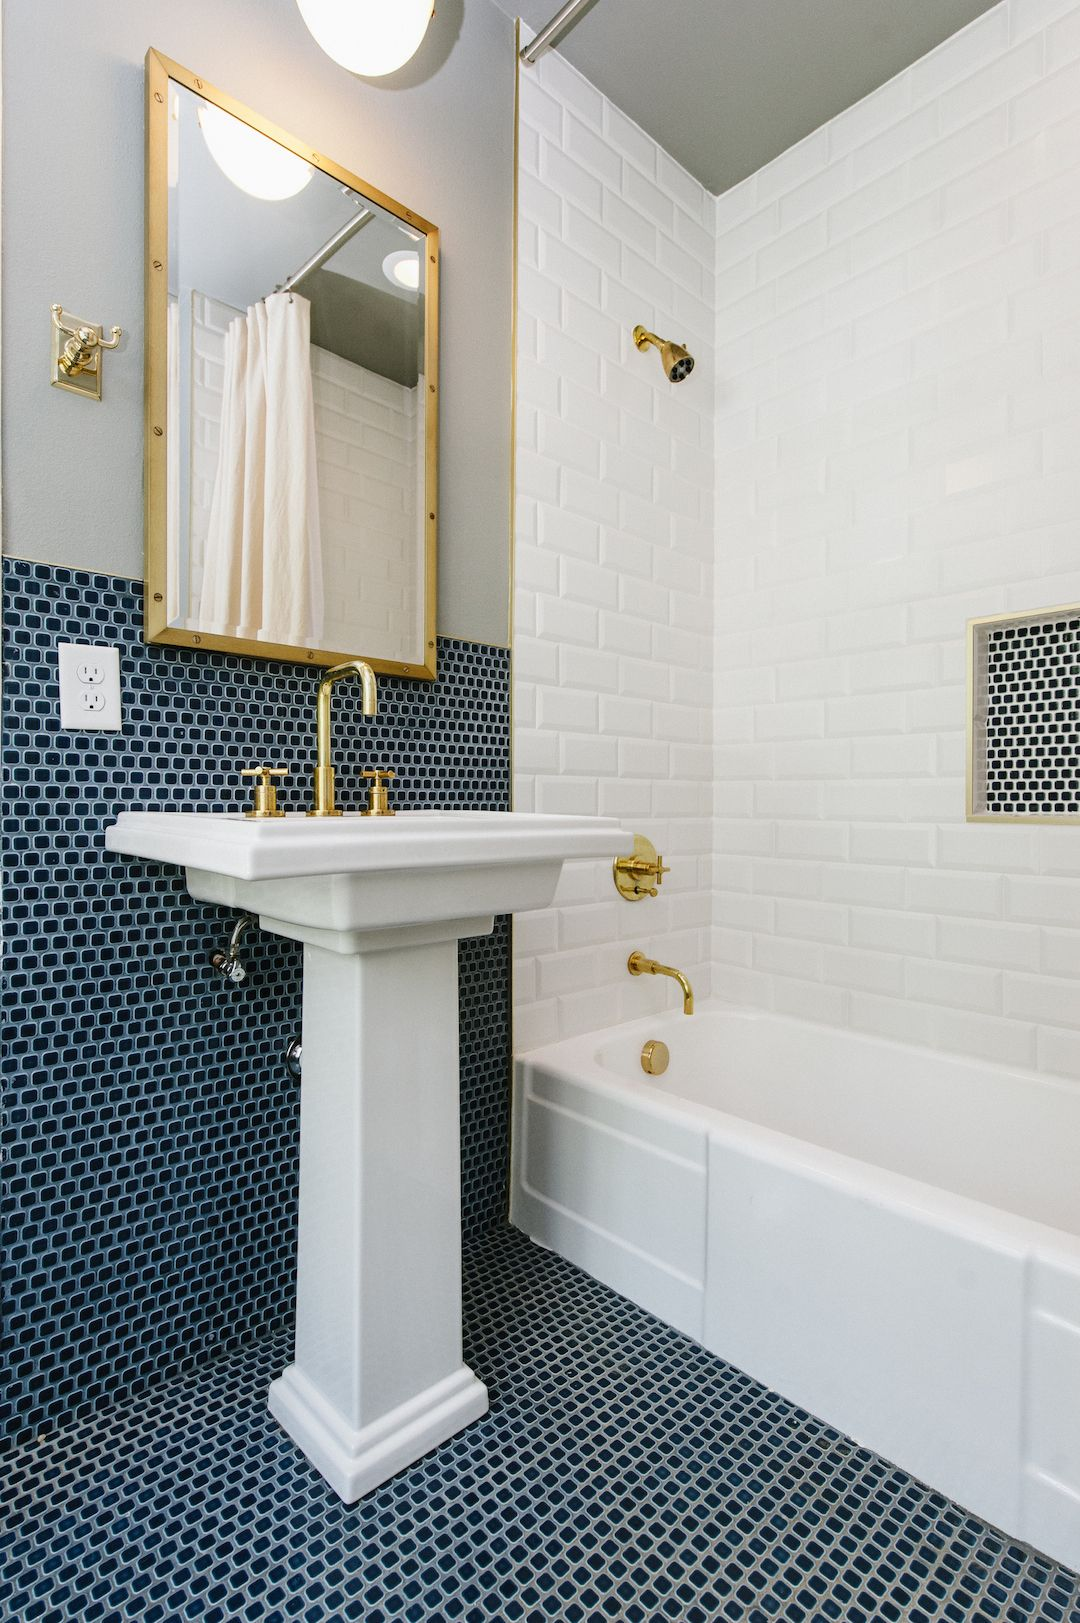 Black And White Bathroom Google Search Blue Bathroom Tile Penny Tiles Bathroom Bathroom Tiles Combination